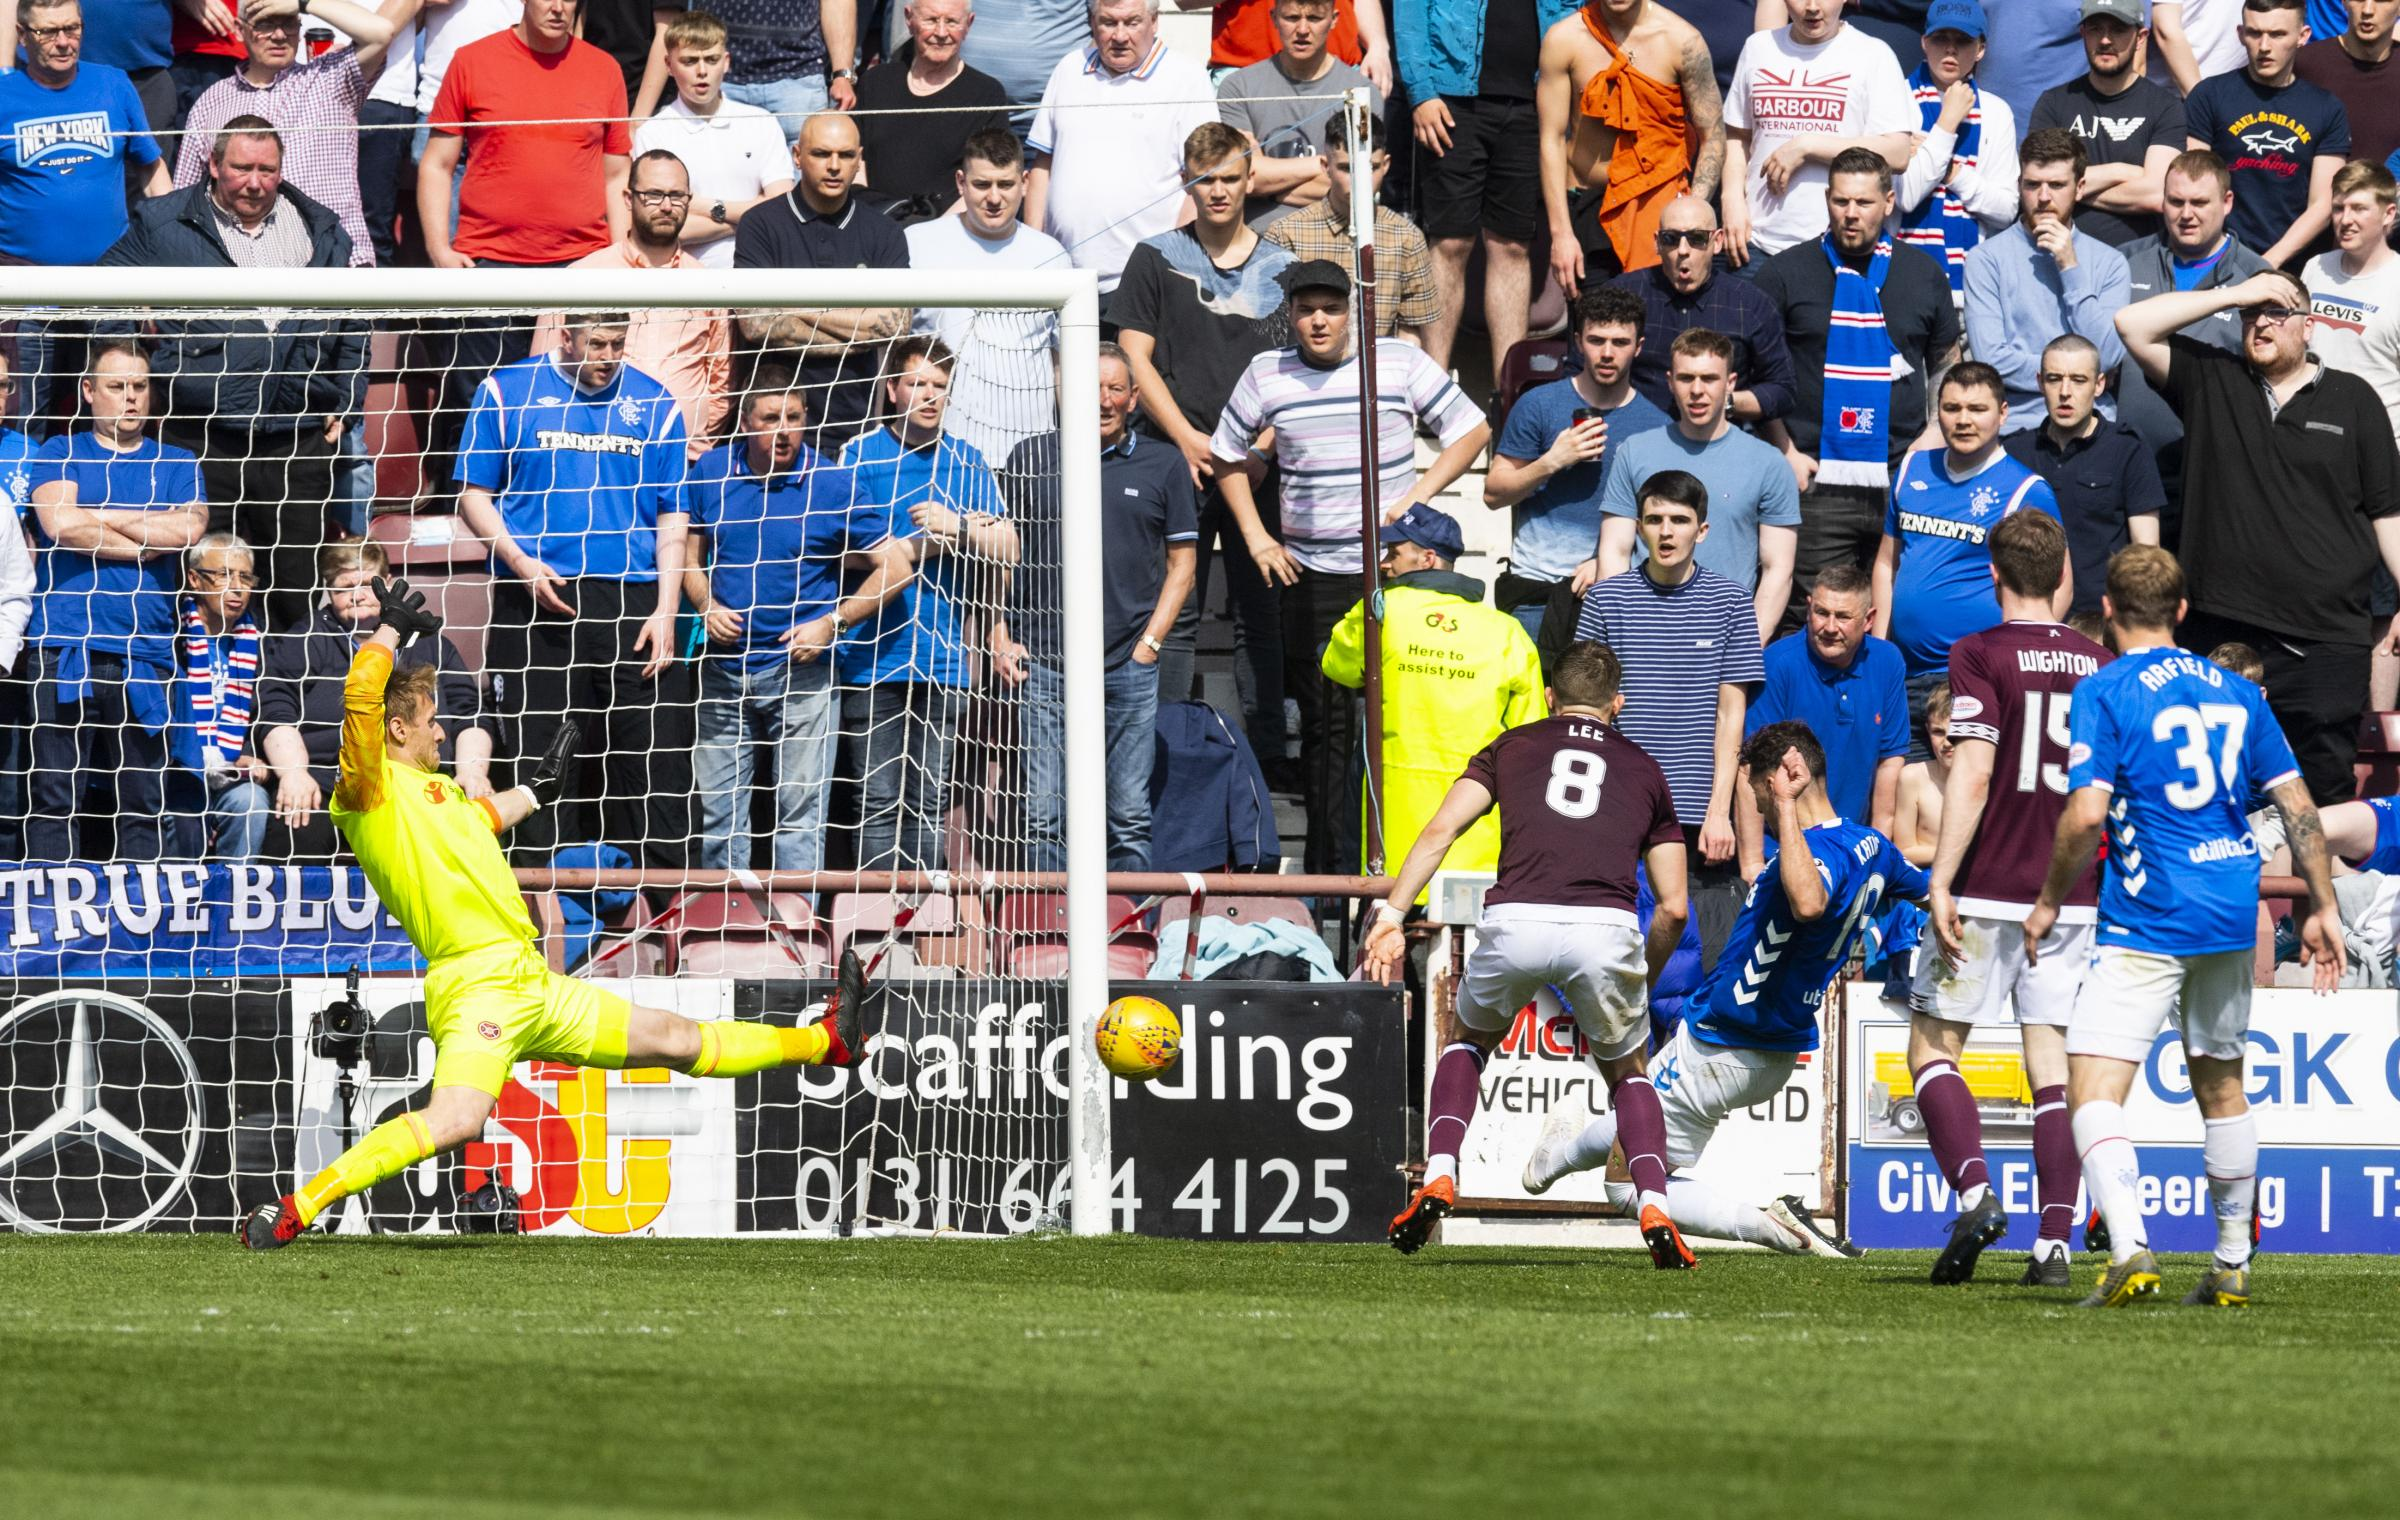 Live: Hearts 1-3 Rangers | MacLean pulls one back for Hearts